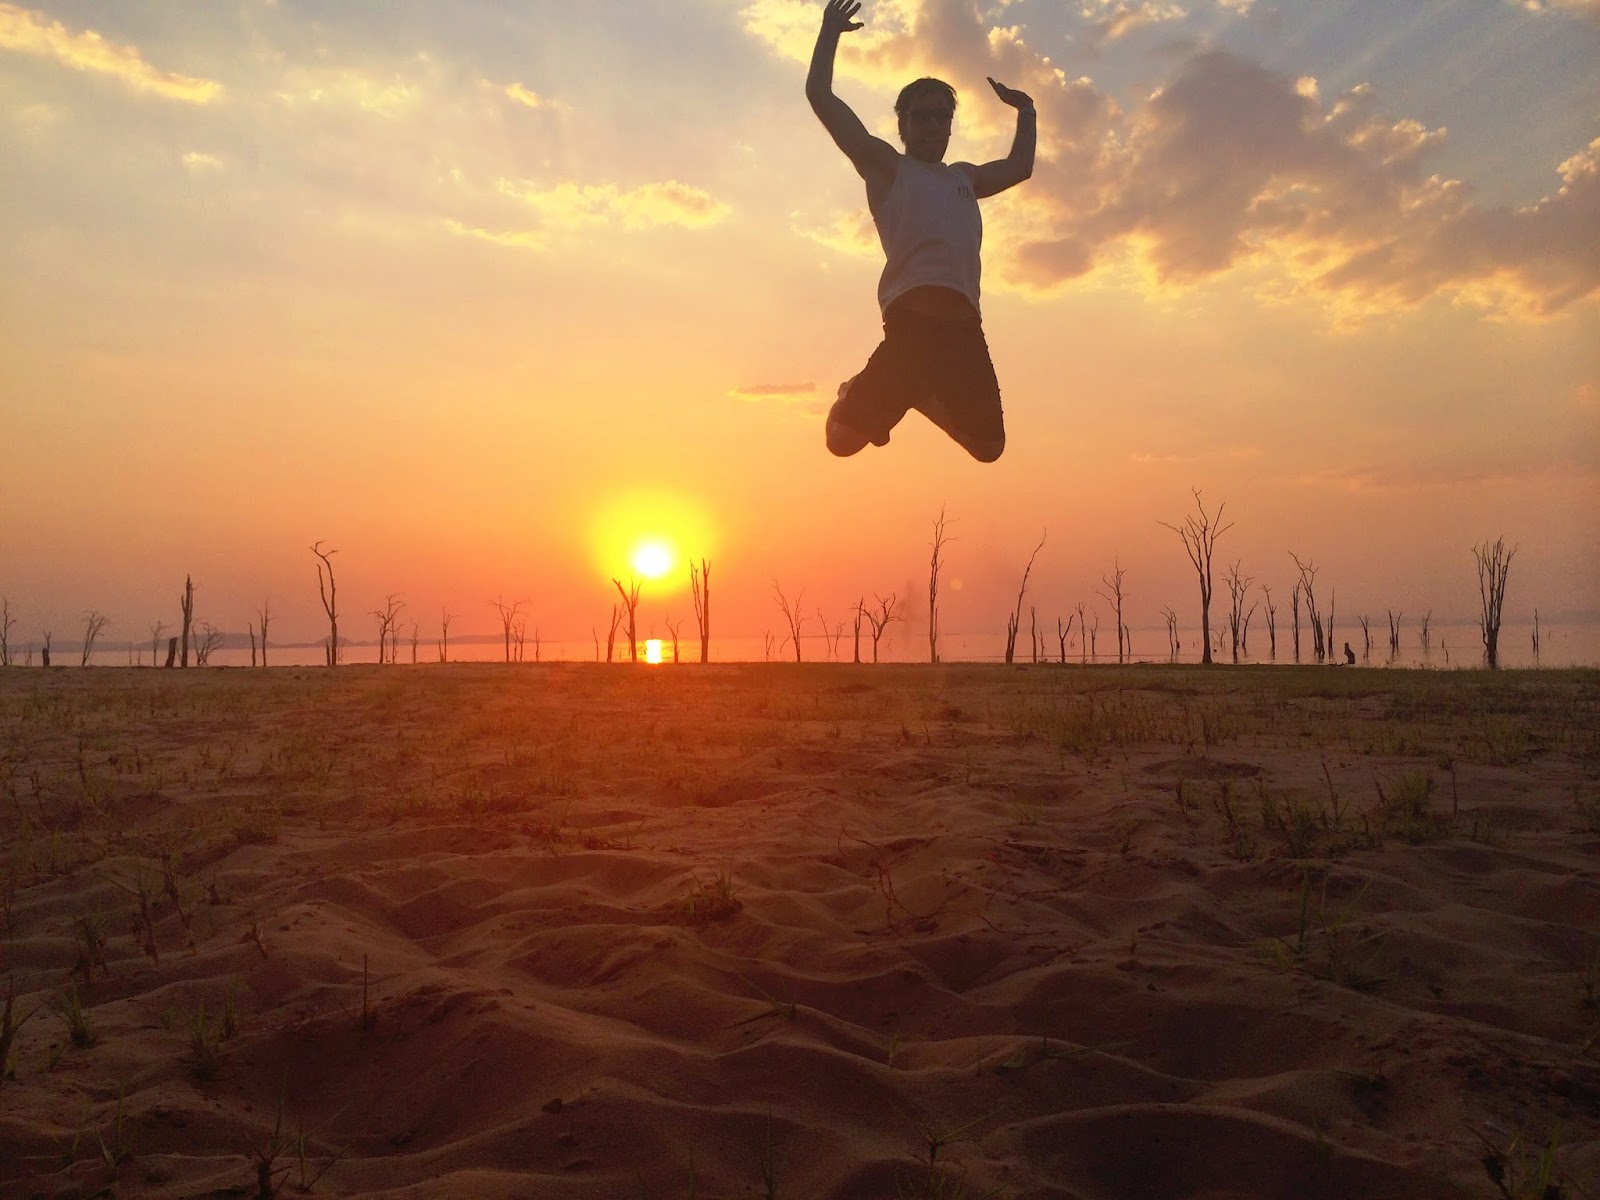 Jumping into the sun - sunset at Rhino Safari Camp